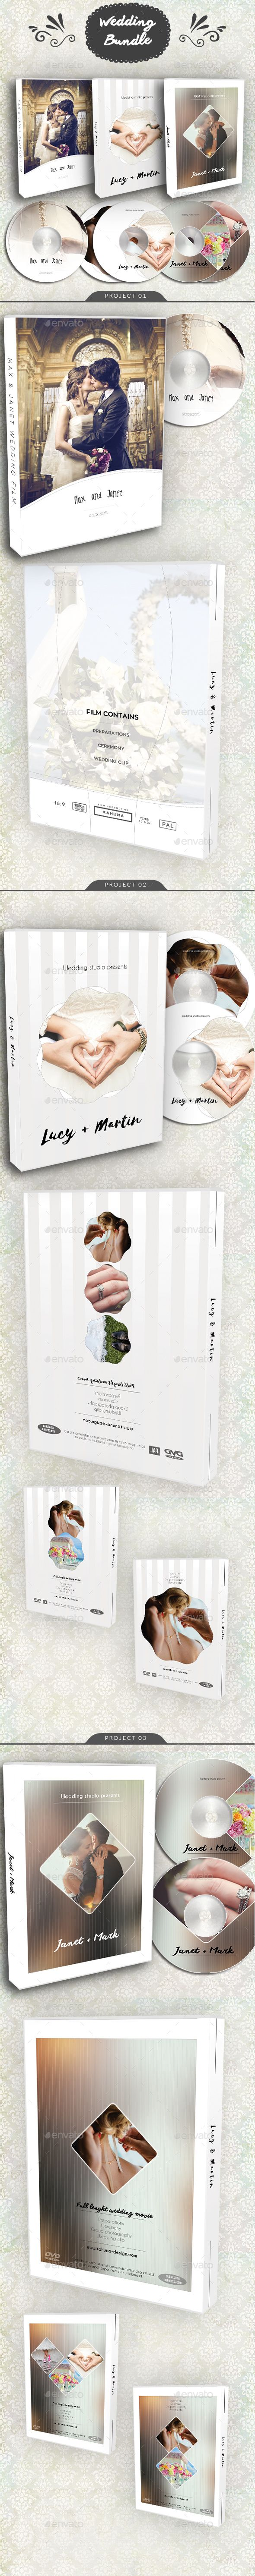 Wedding DVD / BluRay Cover Bundle 3 — Photoshop PSD #cd #cover • Available here ➝ https://graphicriver.net/item/wedding-dvd-bluray-cover-bundle-3/20946702?ref=pxcr